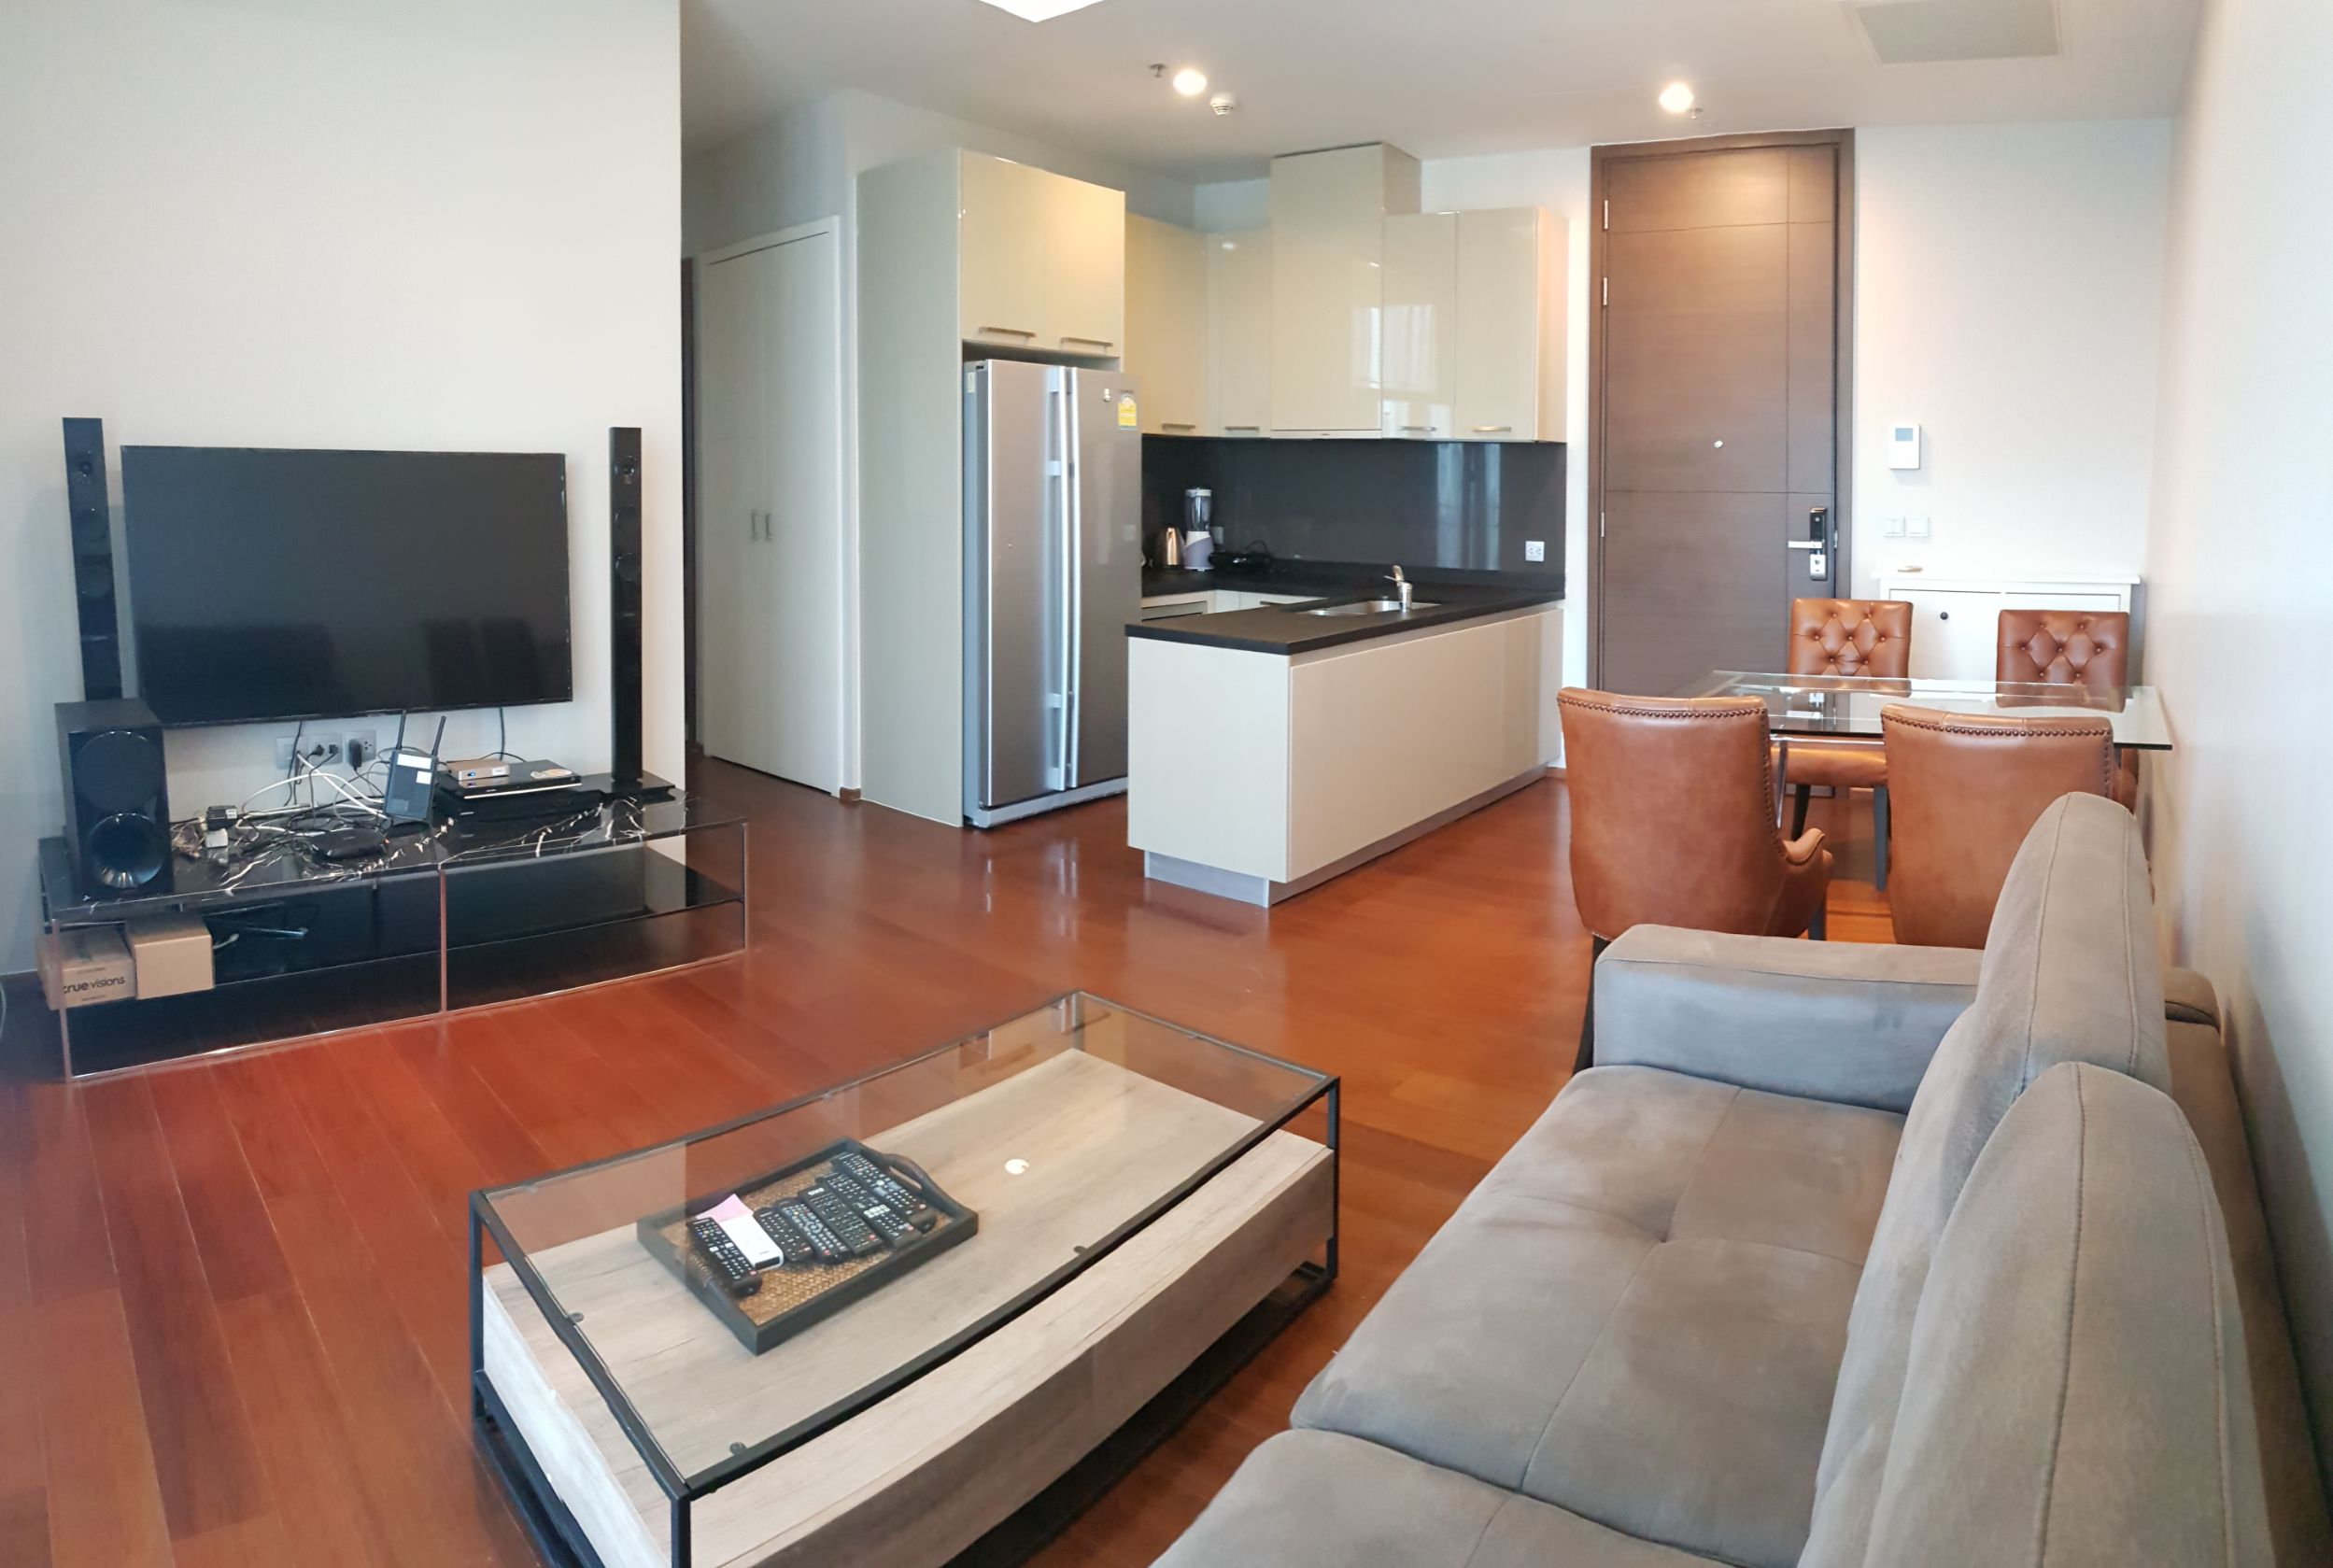 For RentCondoSukhumvit, Asoke, Thonglor : Shock Price !!! Very Best Deal Now 65,000 From 75,000 At Quattro Thonglor Soi4 0645414424